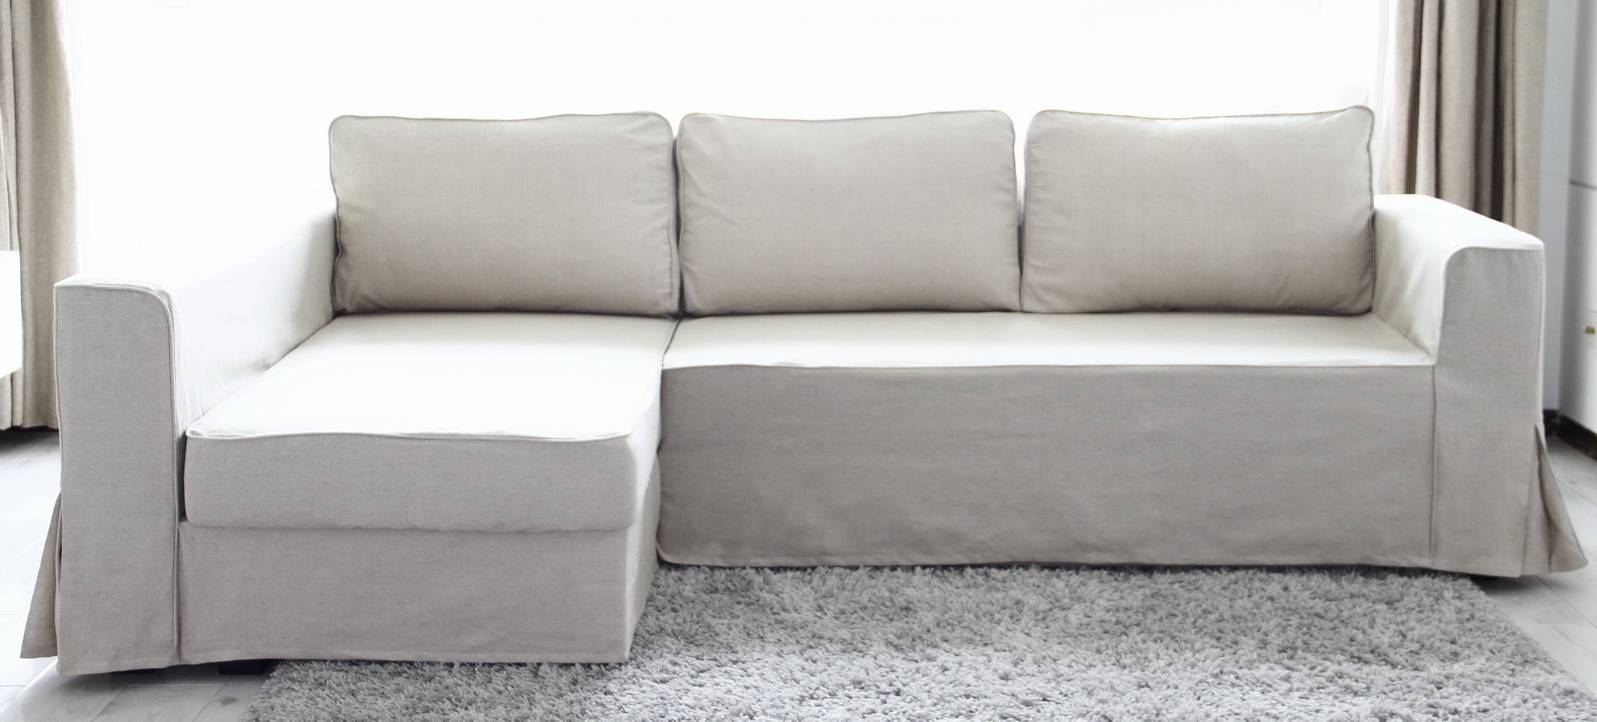 About The Ikea Sleeper Sofa : S3Net U2013 Sectional Sofas Sale For Ikea  Sectional Sofa Sleeper Part 53